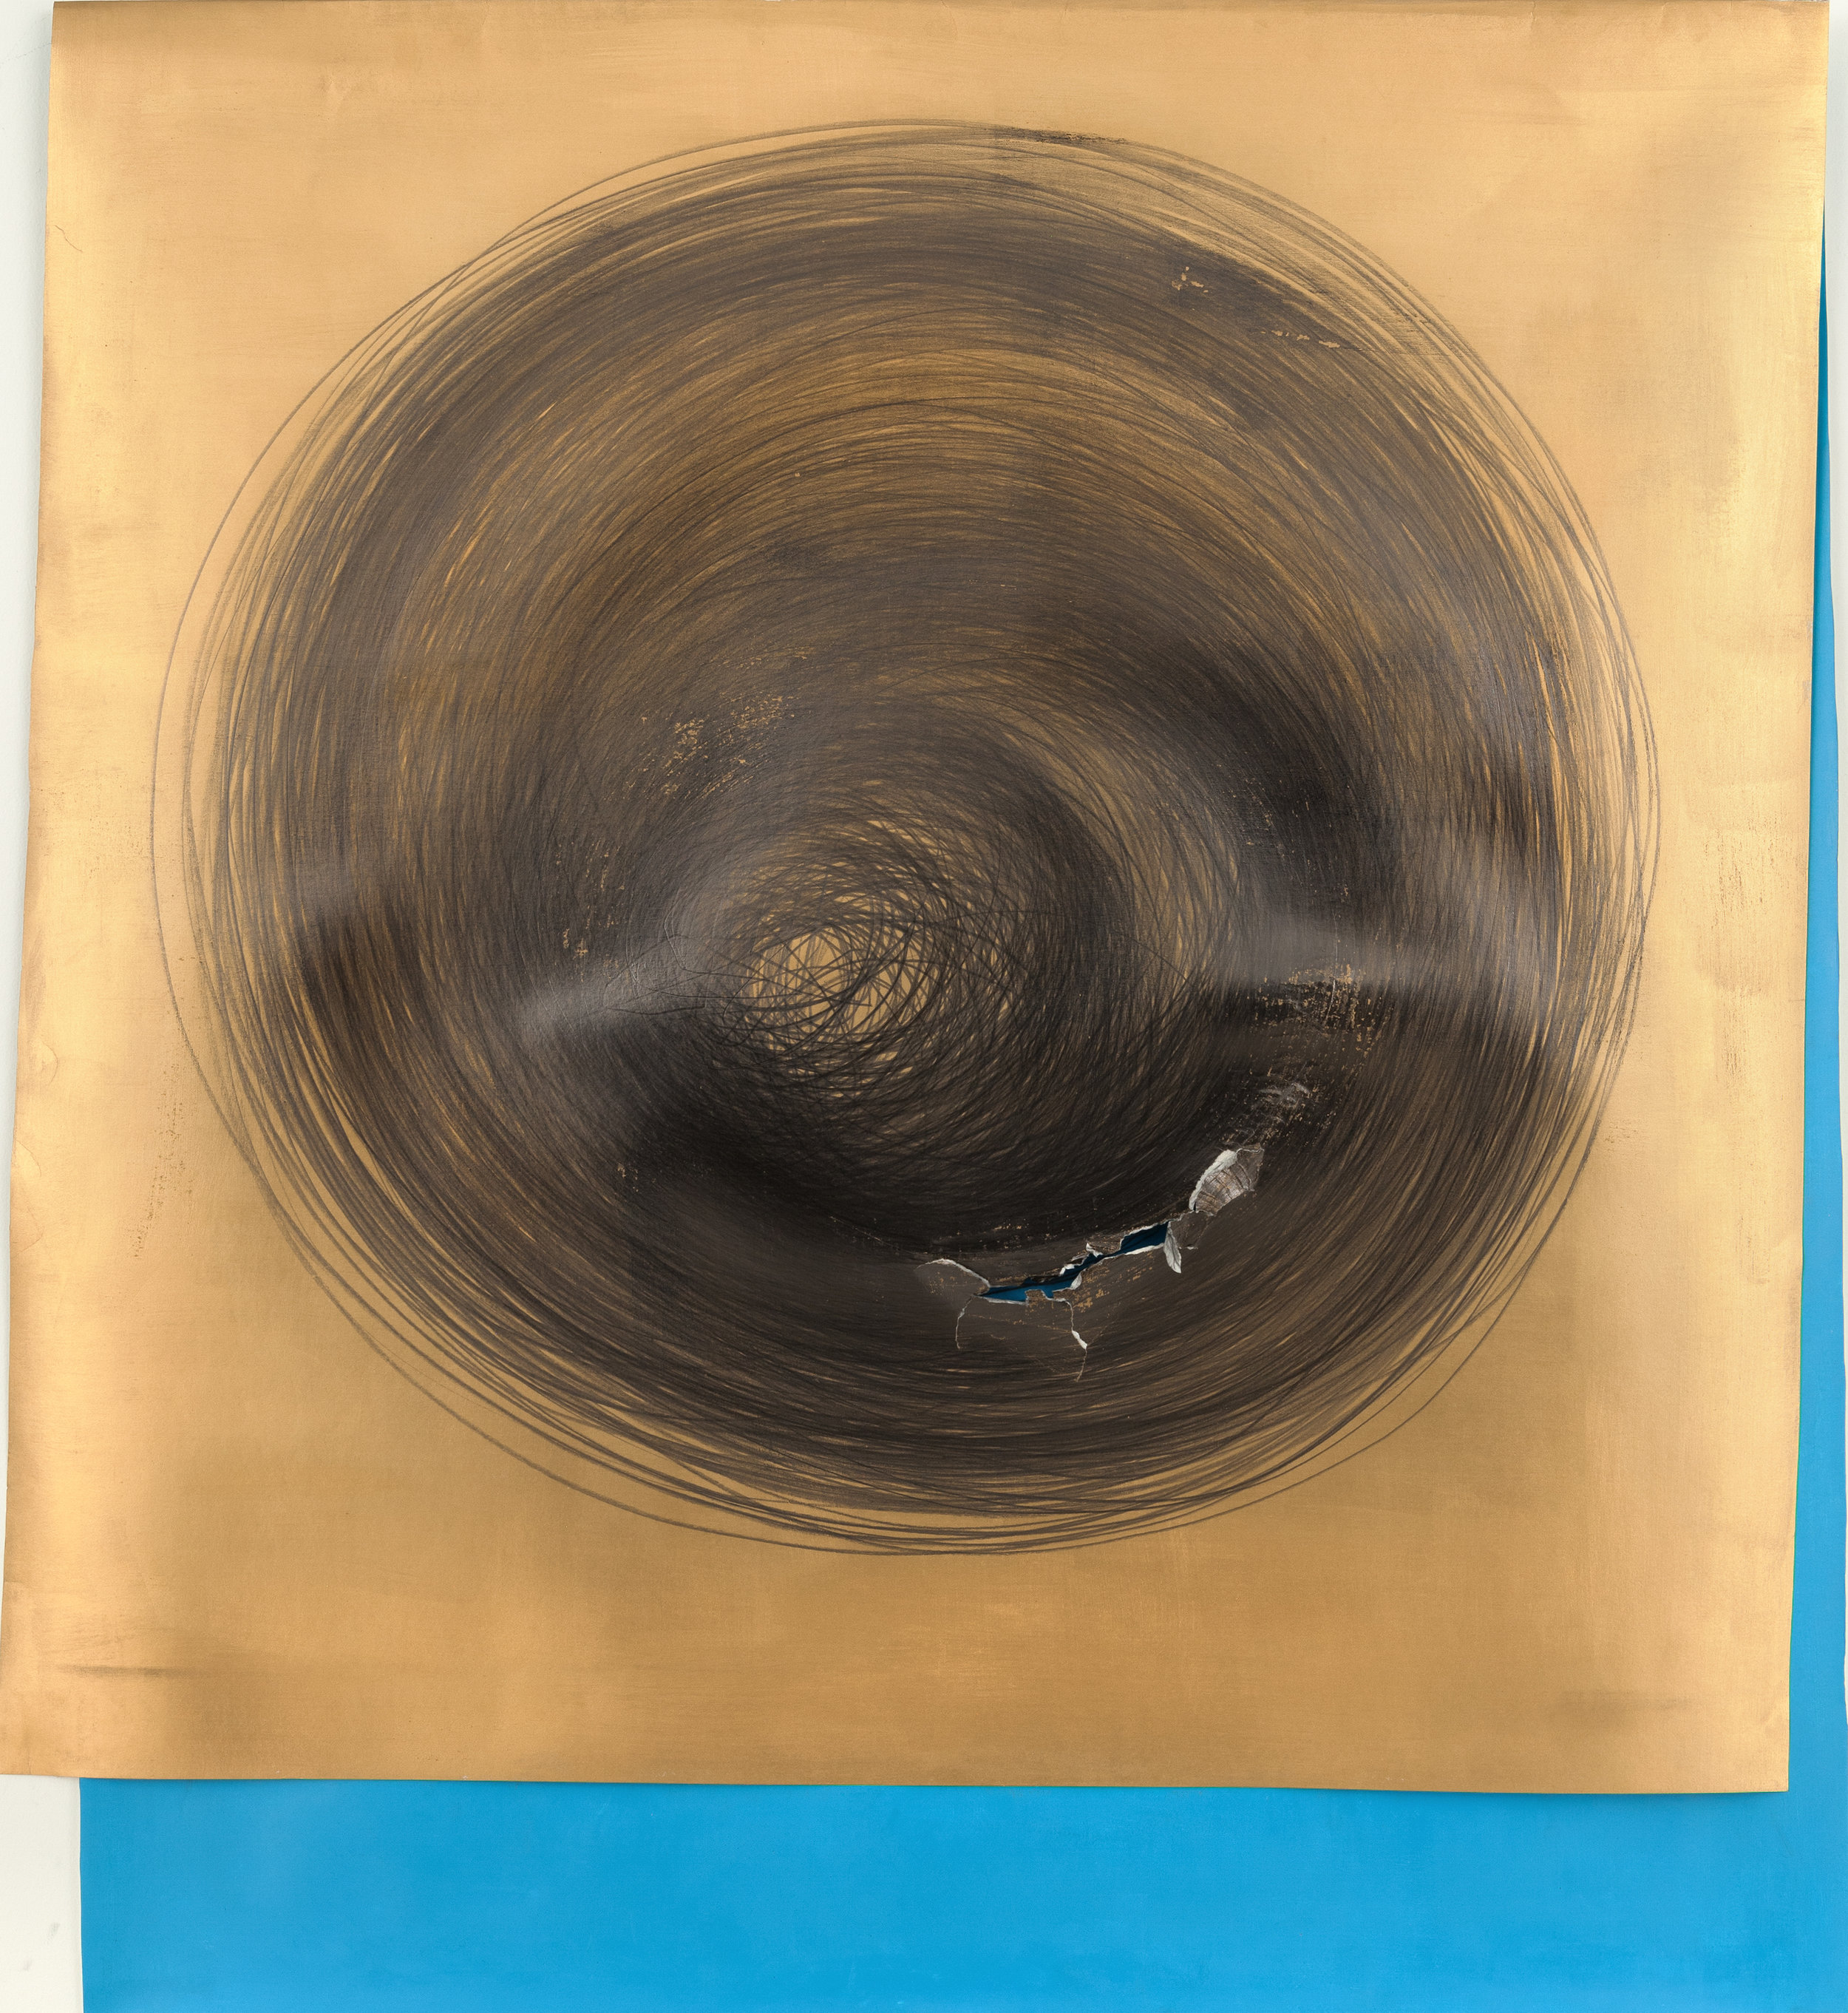 Circle Drawing: Gold / Light-Blue, 1hour 38minutes (2018)